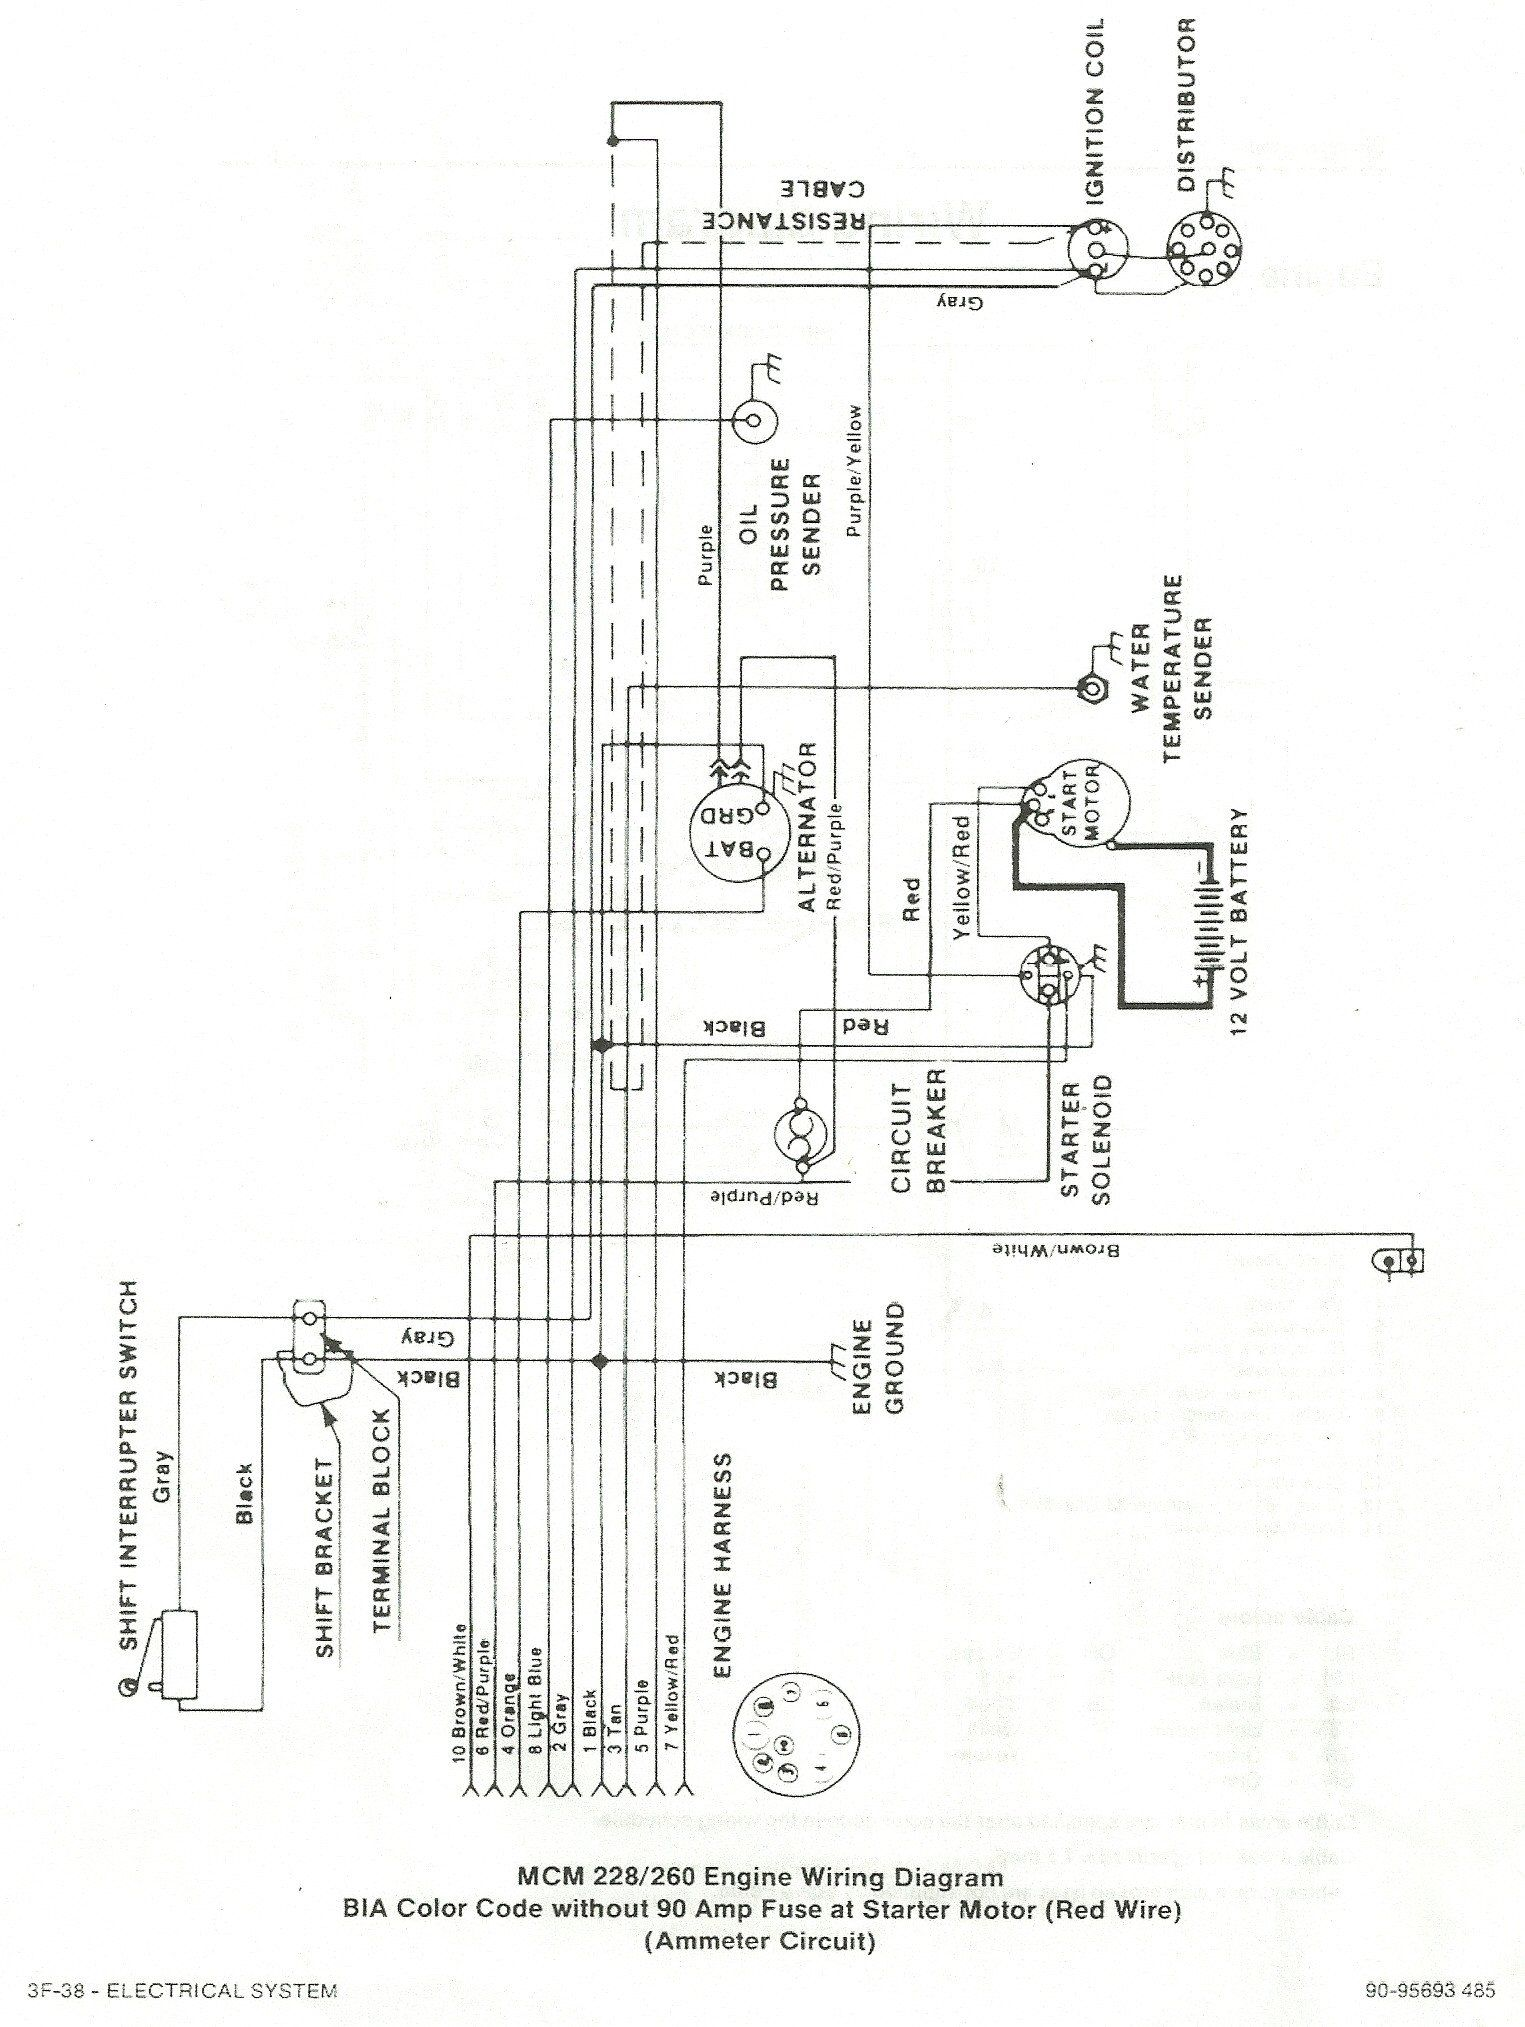 Aw4 Transmission Diagram